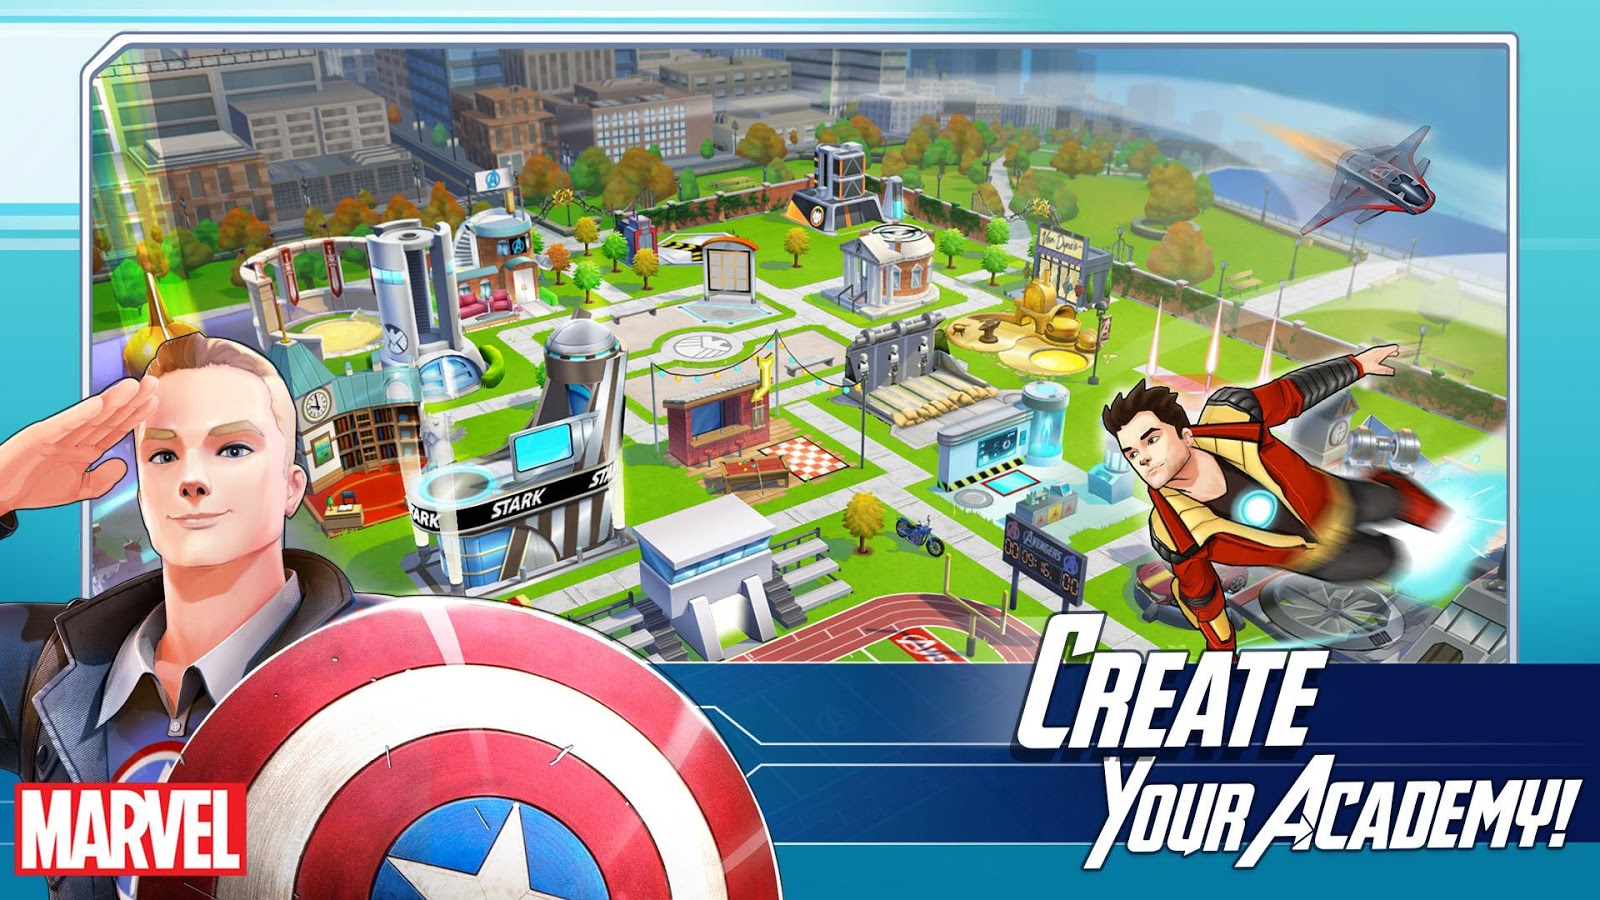 MARVEL Avengers Academy Screenshot 4